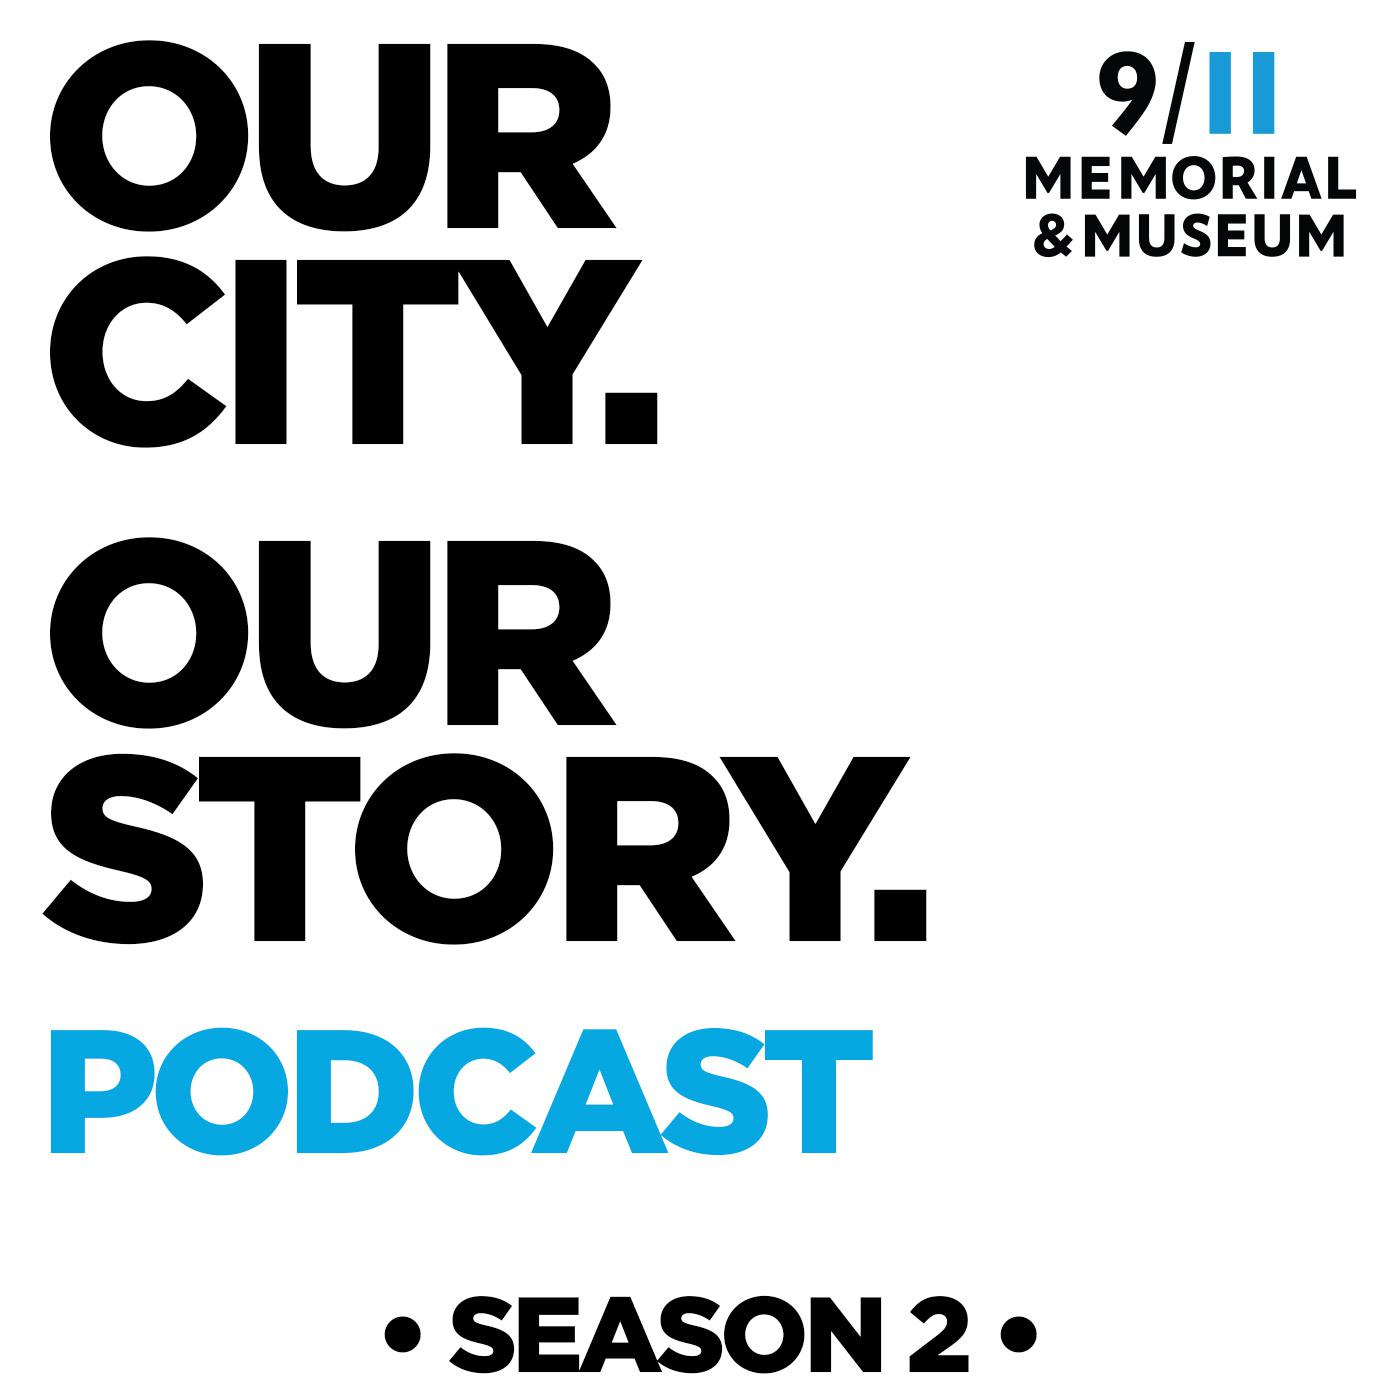 OUR CITY  OUR STORY  (podcast) - 9/11 Memorial & Museum